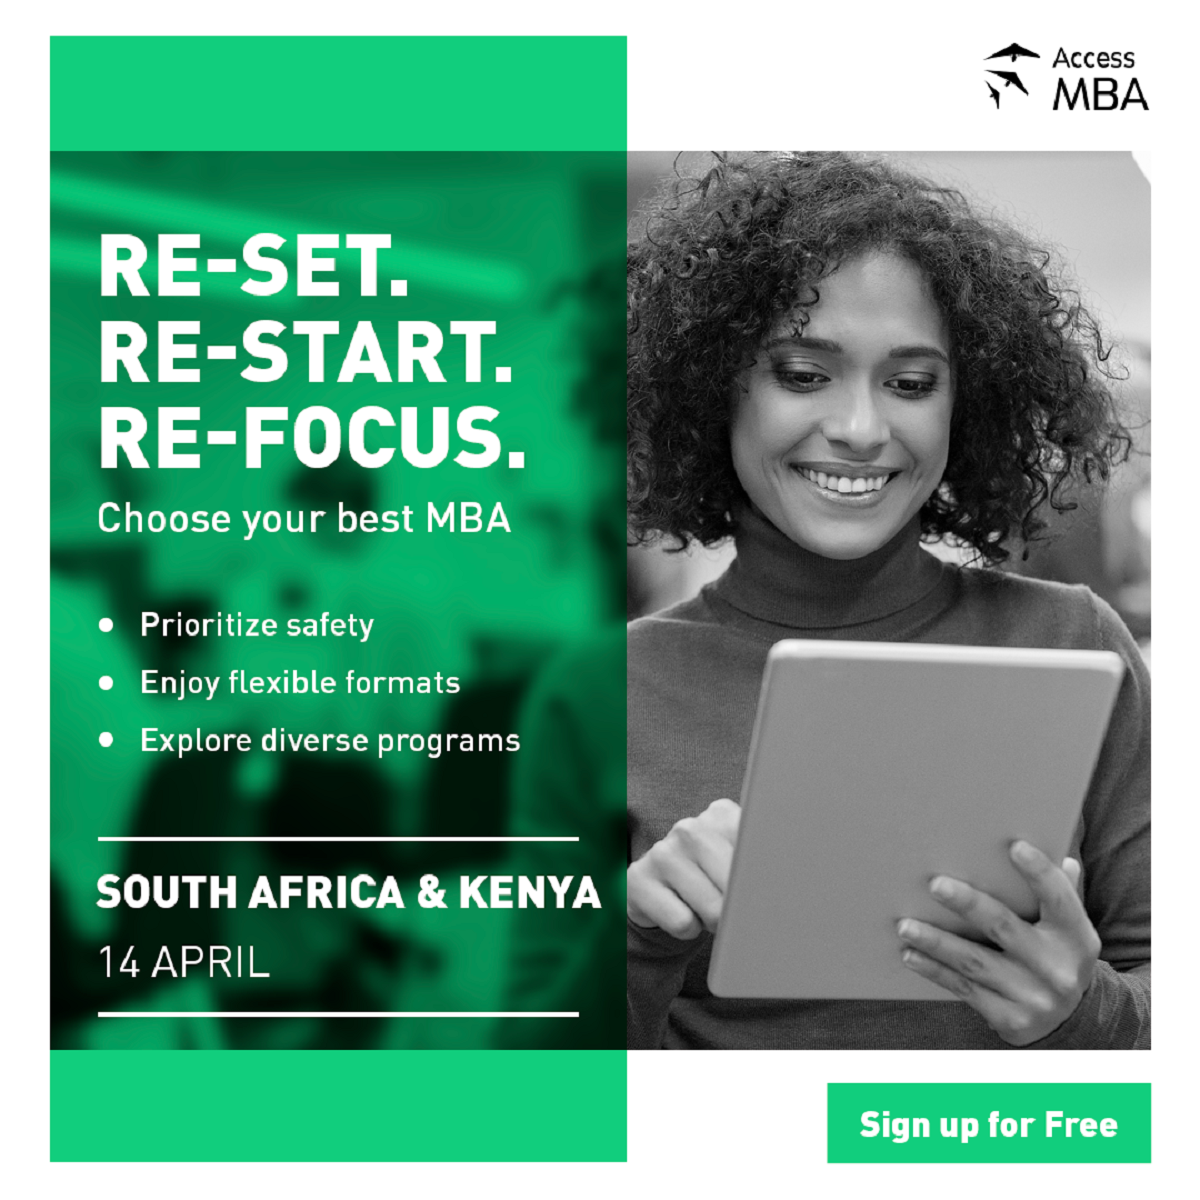 Kenya & South Africa MBA Online Event